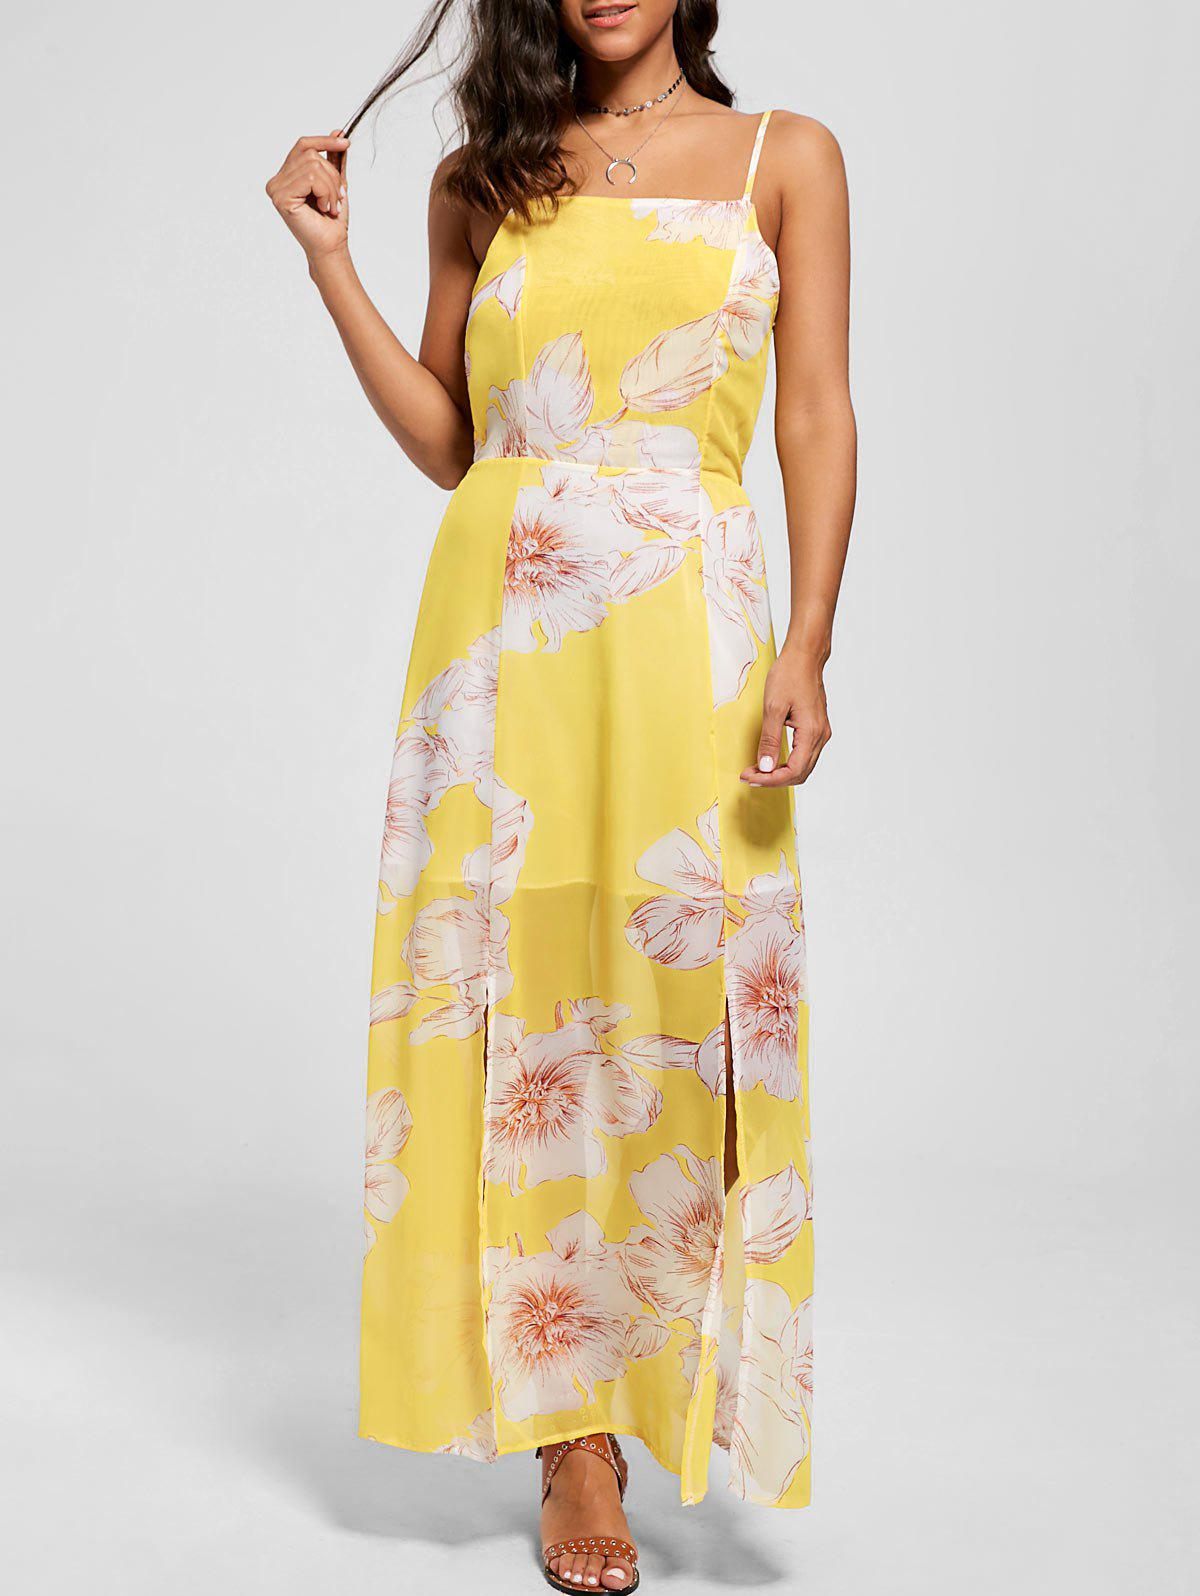 Floral Spaghetti Strap Maxi Beach Dress - YELLOW XL